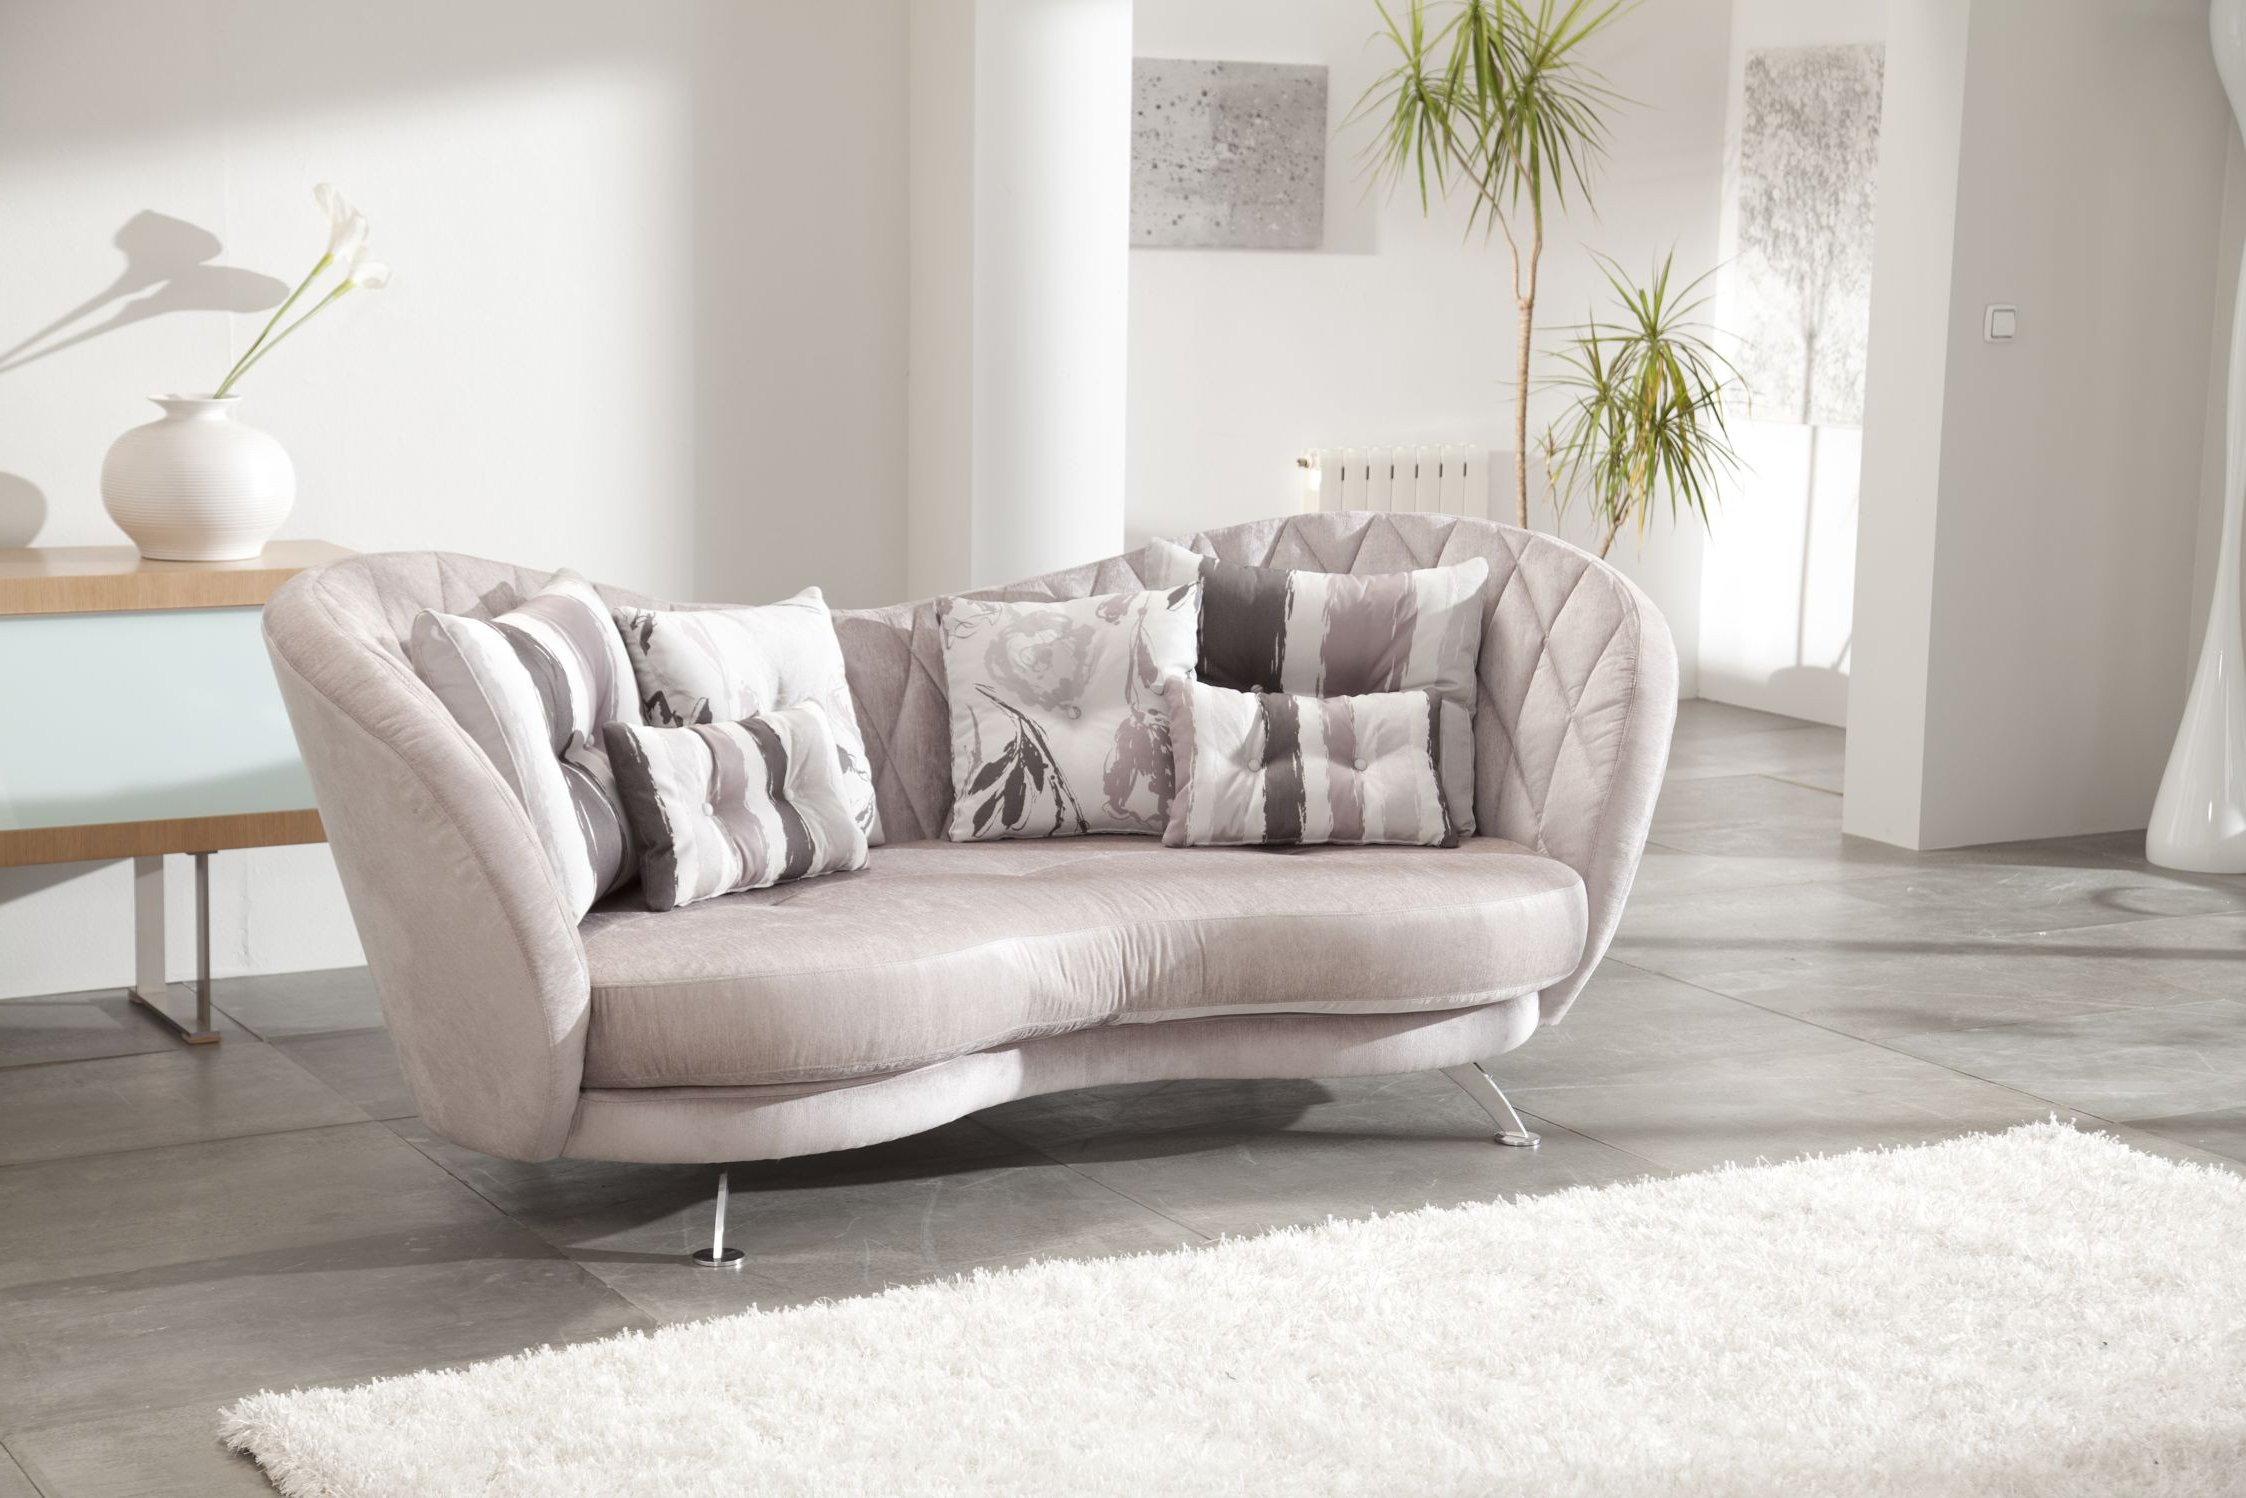 Fama Sofas Pertaining To Most Current Josephine Sofa Chairs (View 17 of 20)